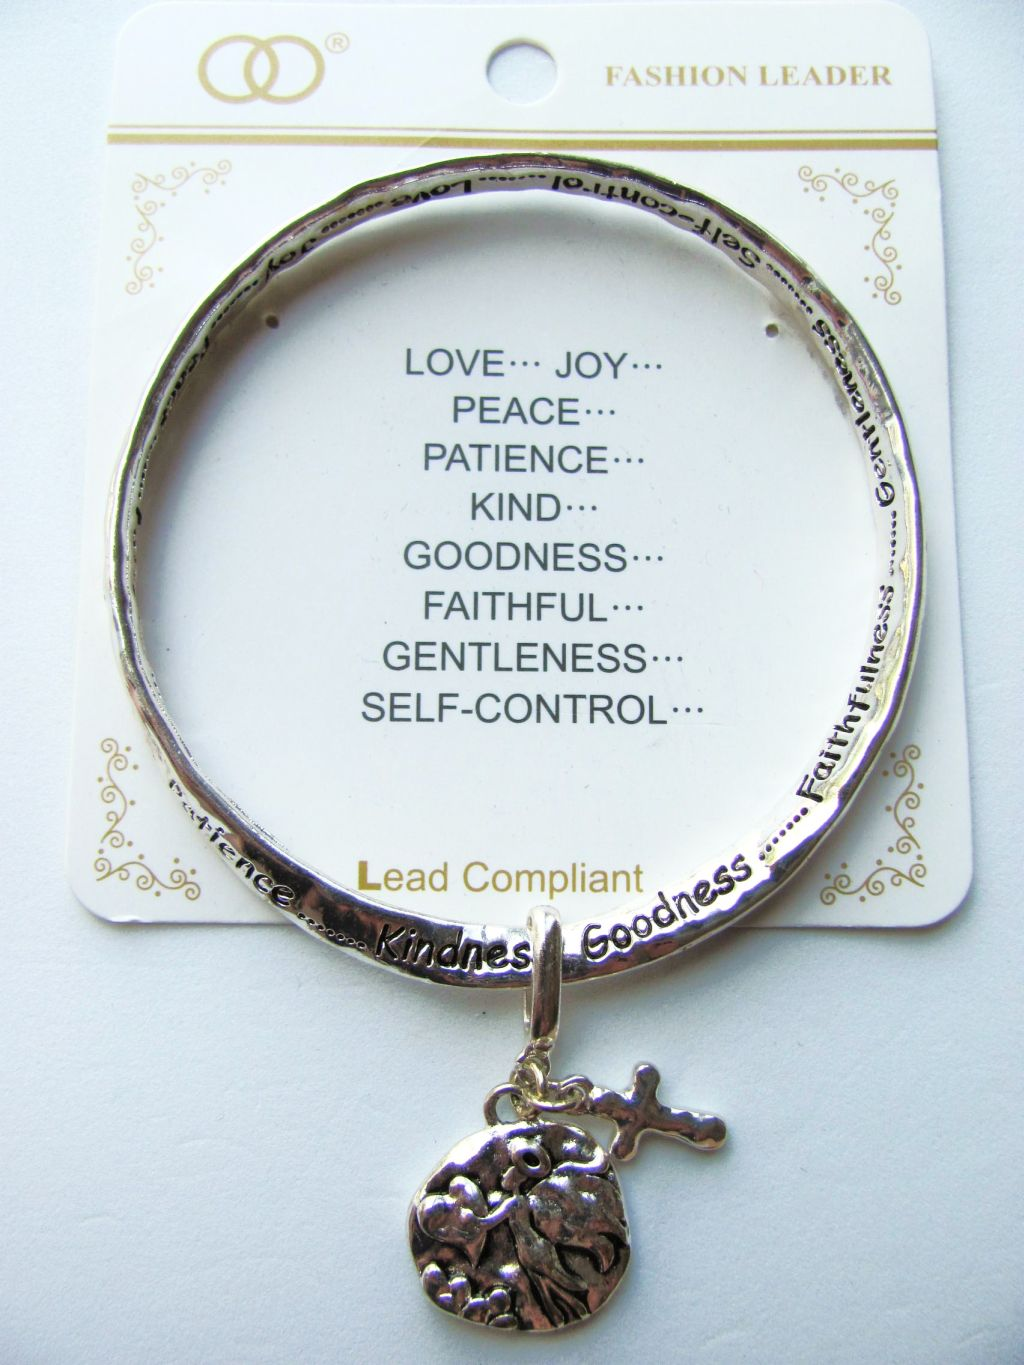 Love Joy Peace Charm Inspirational Twisted Bangle Bracelet w/ Engraving Silver Plated